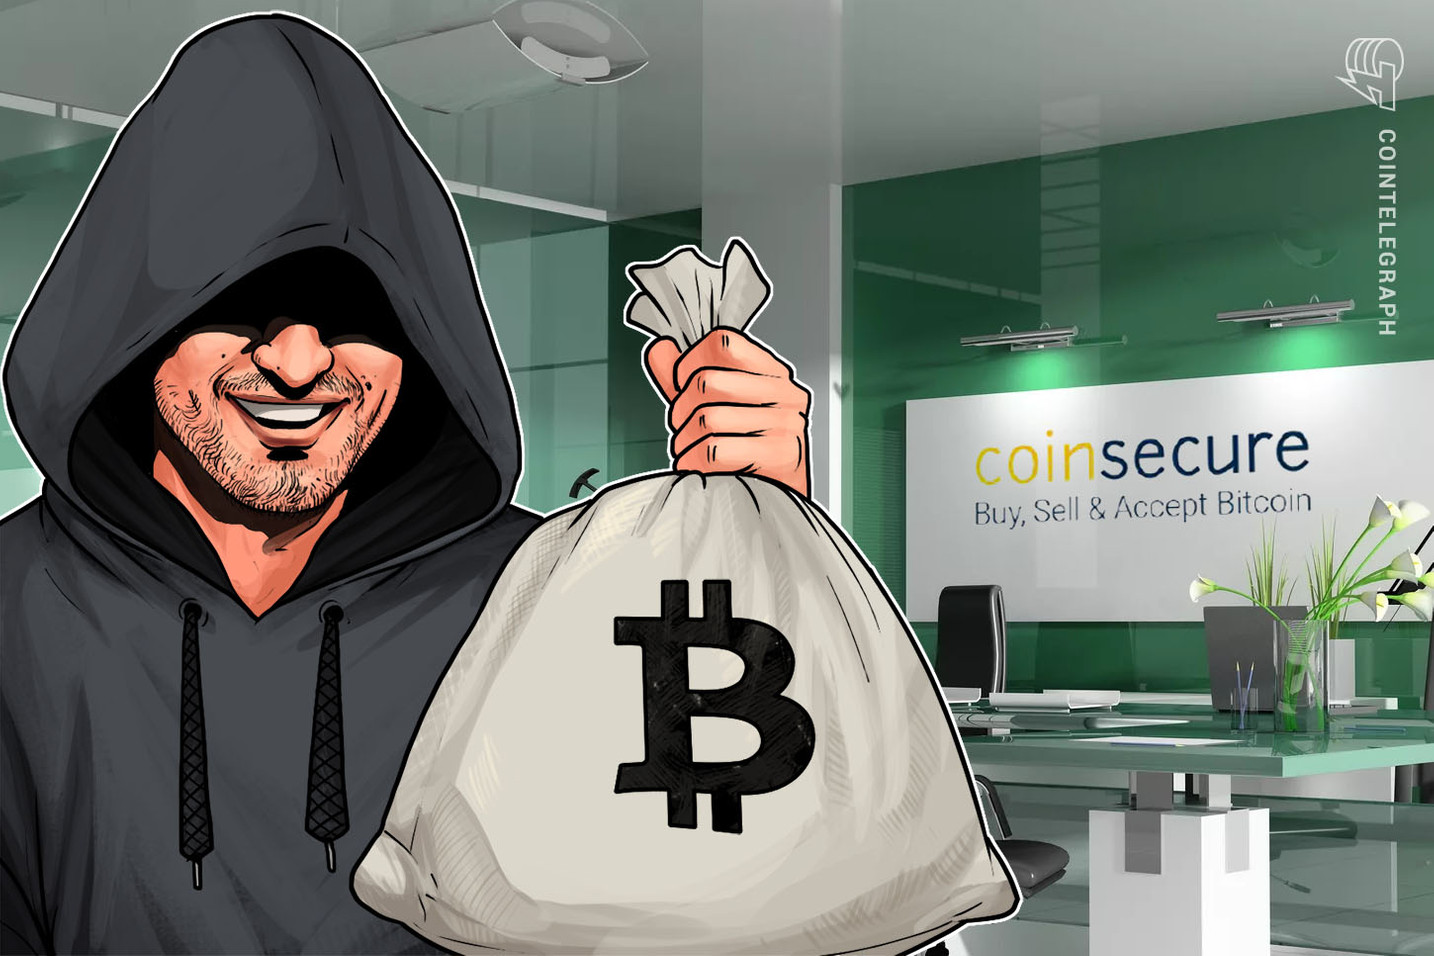 Indian Exchange Coinsecure Prepares Customer Claims Process Following $3.5 mln Theft